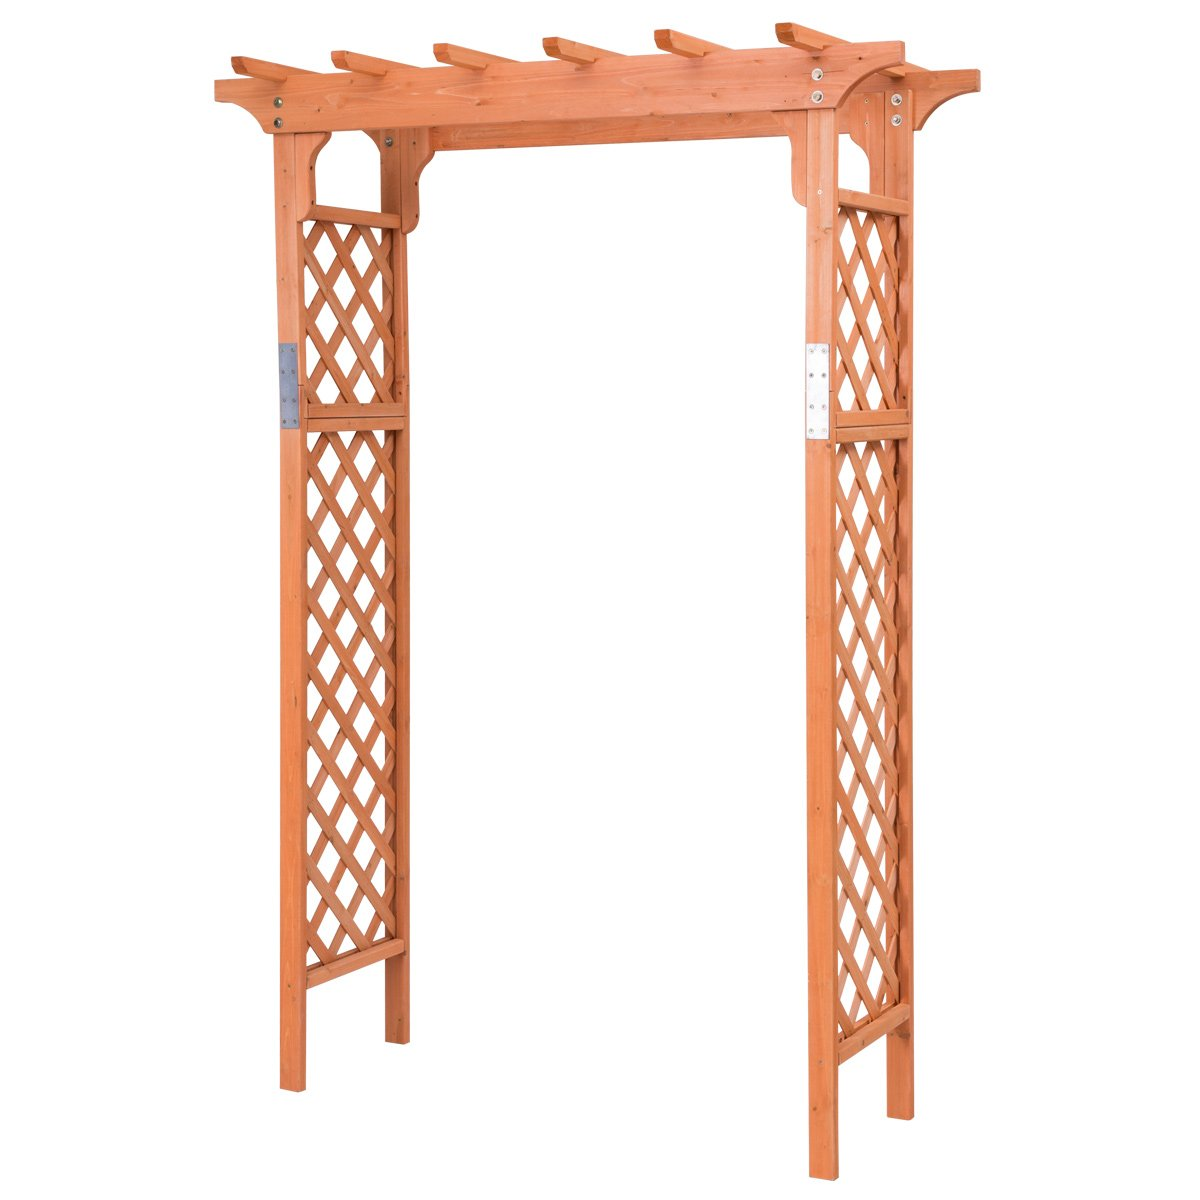 Giantex Garden Arbor Fir Wood Over 7ft High Outdoor Patio Pergola Trellis